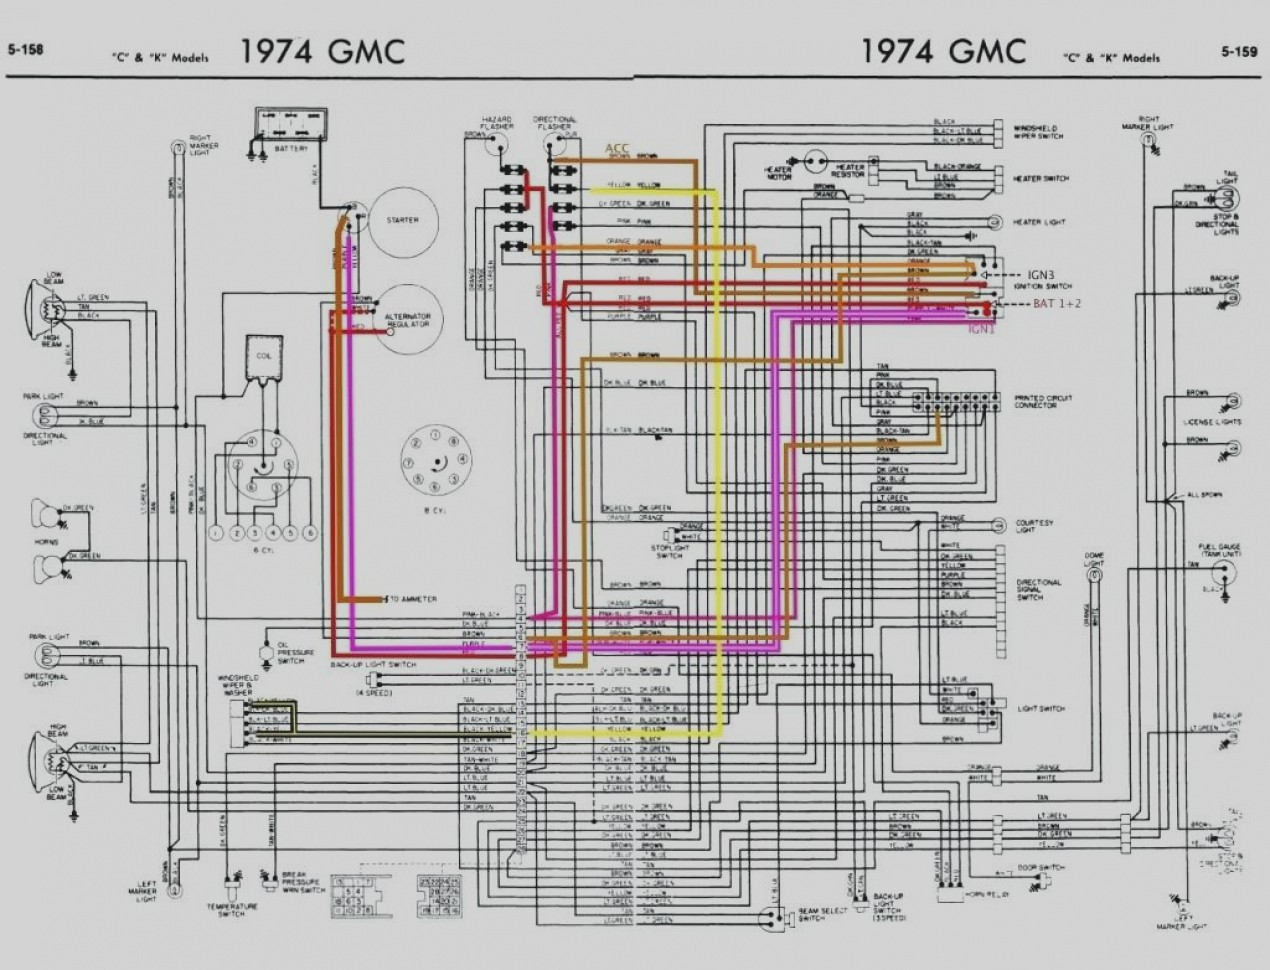 1980 chevy truck wiring diagram 1981 chevy truck wiring diagram rh javastraat co 1950 chevy wiring diagram 1950 chevy wiring diagram